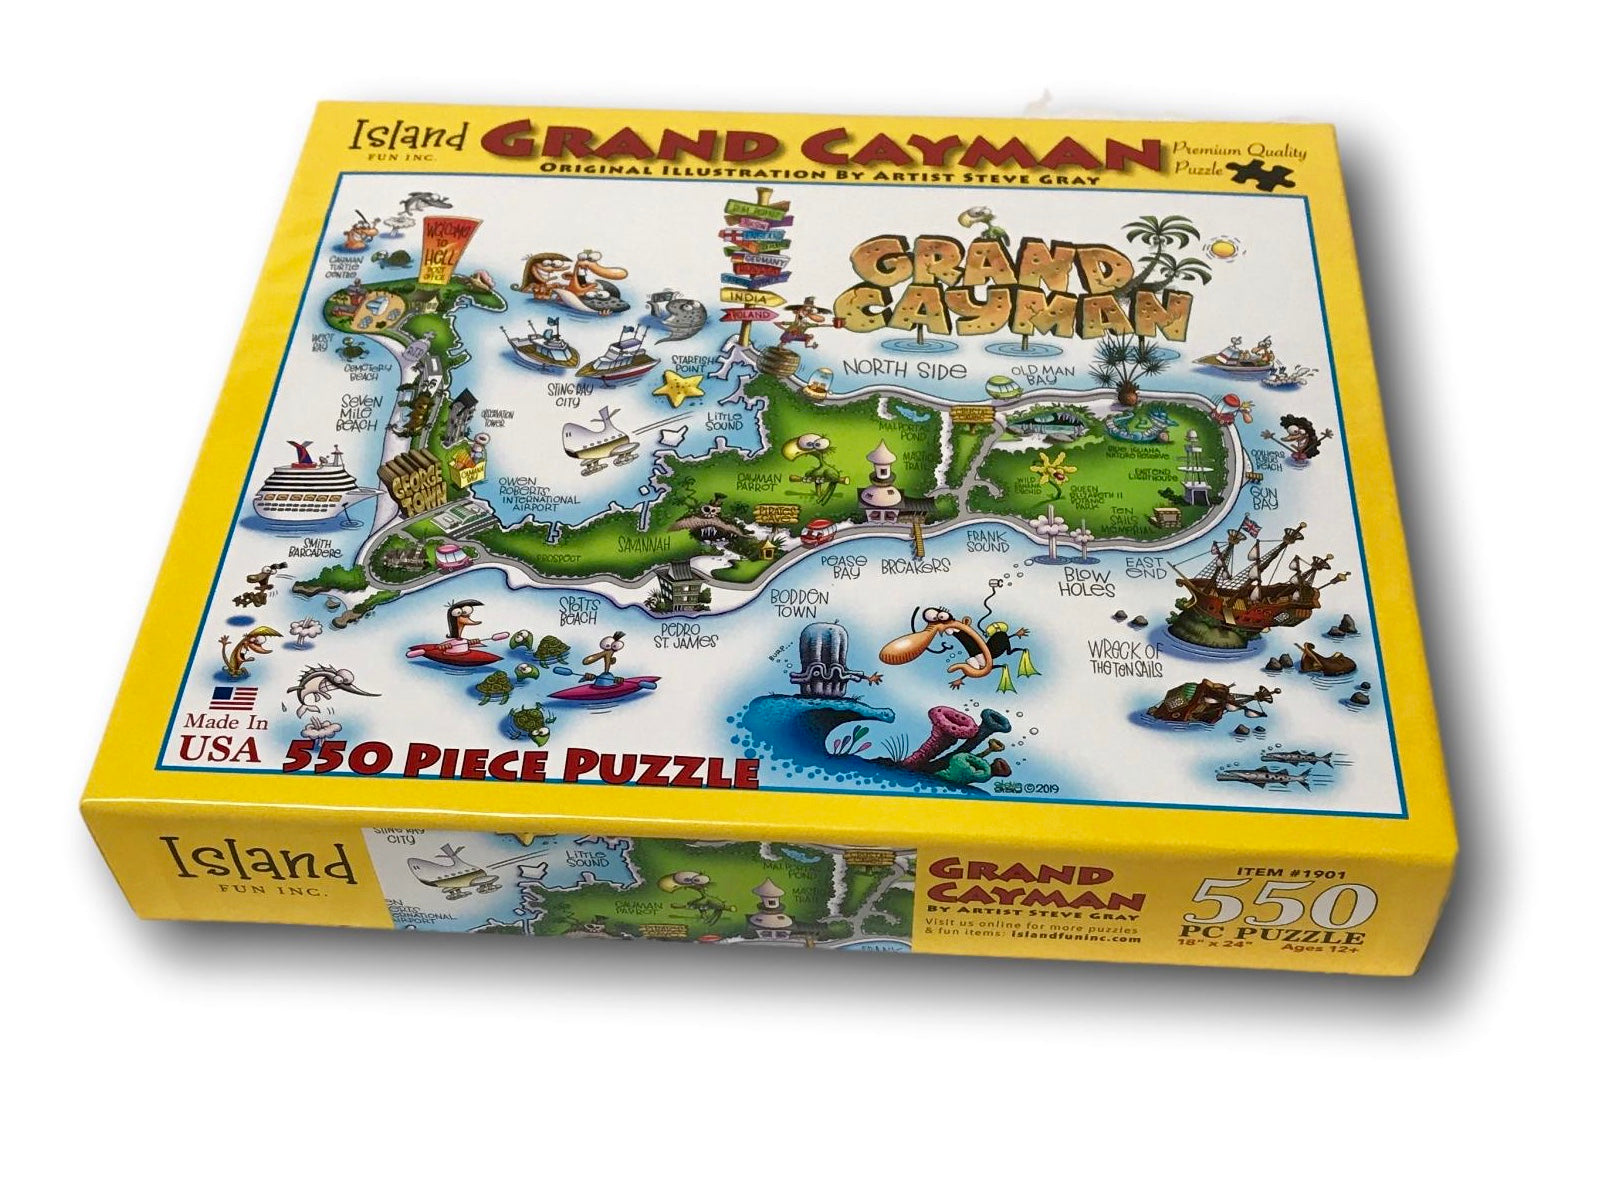 Grand Cayman Jigsaw Puzzle by artist Steve Gray Gray Box